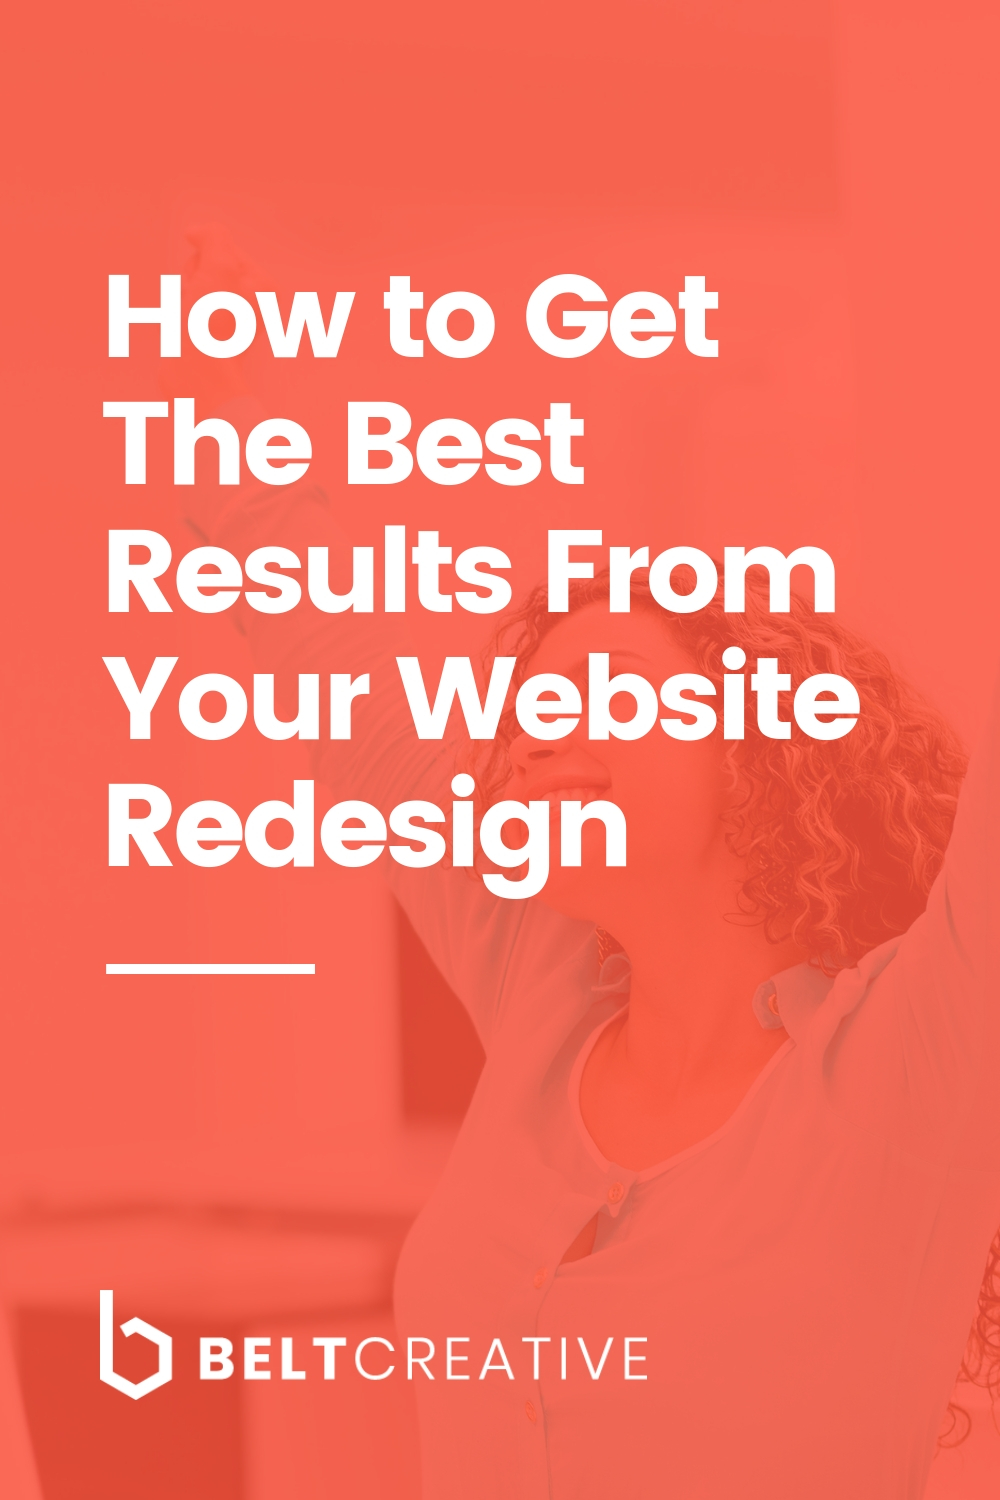 How to Get The Best Results From Your Website Redesign.jpg